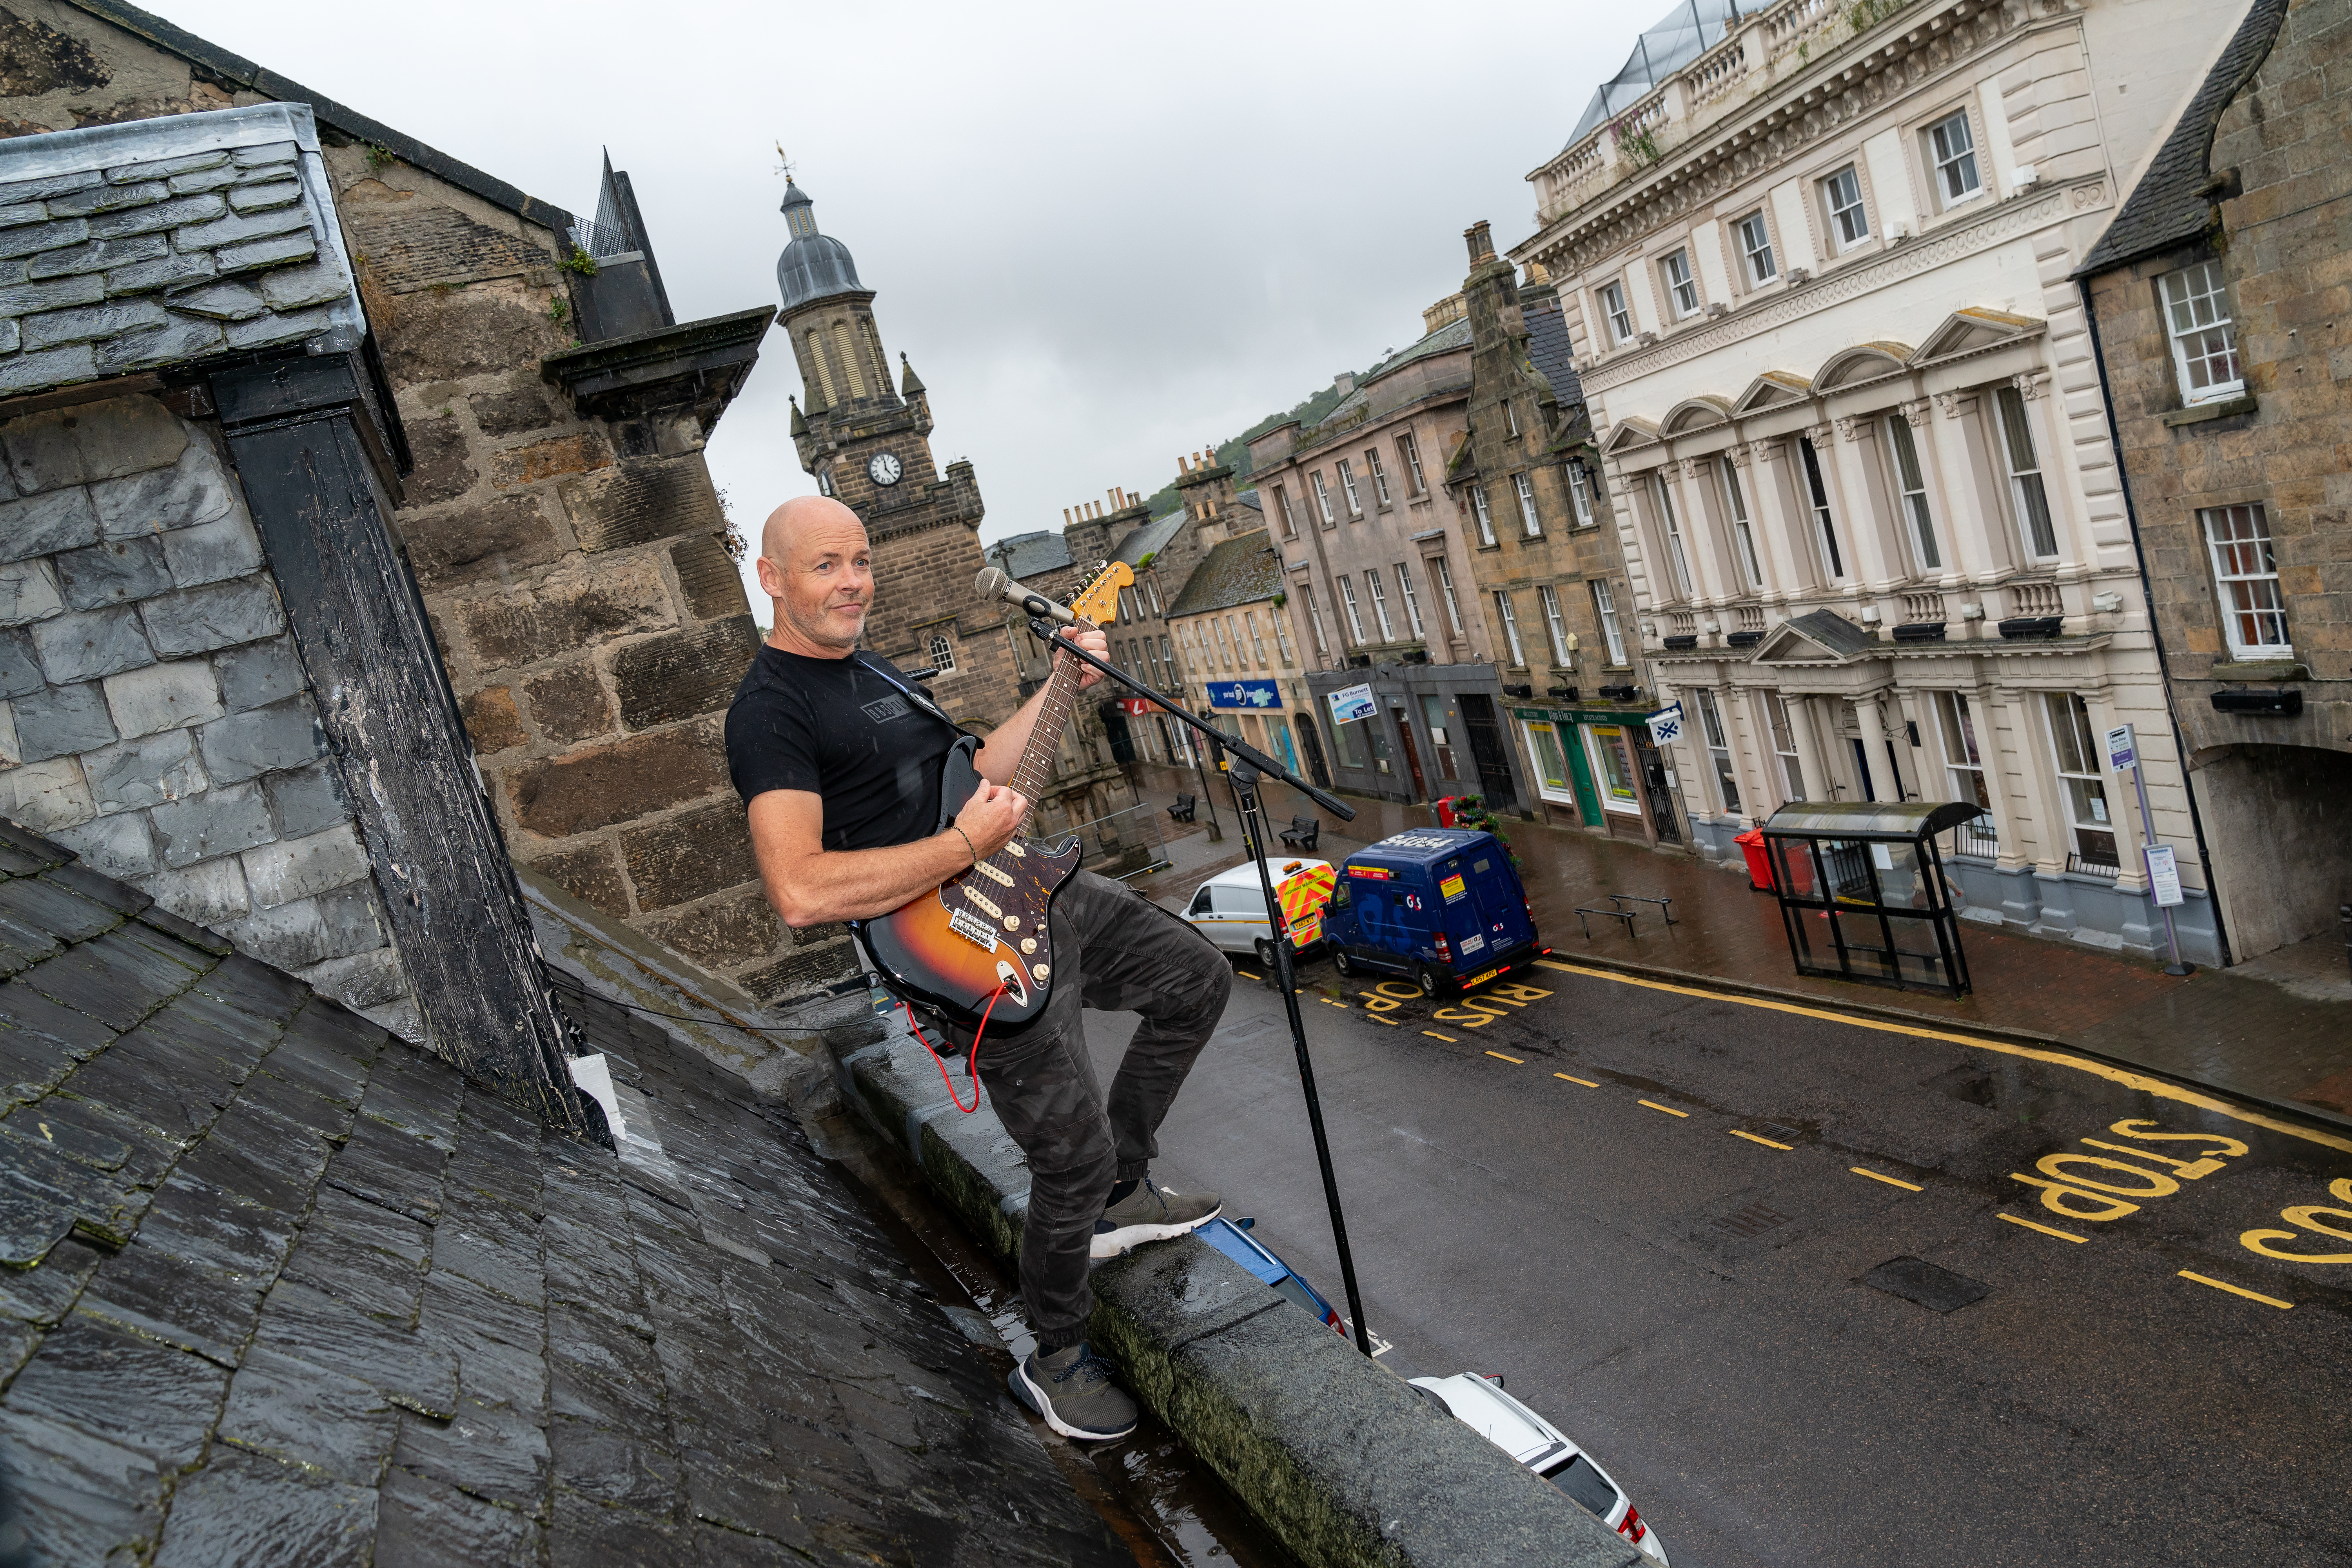 Dave Levon singing from his rooftop on High Street, Forres.